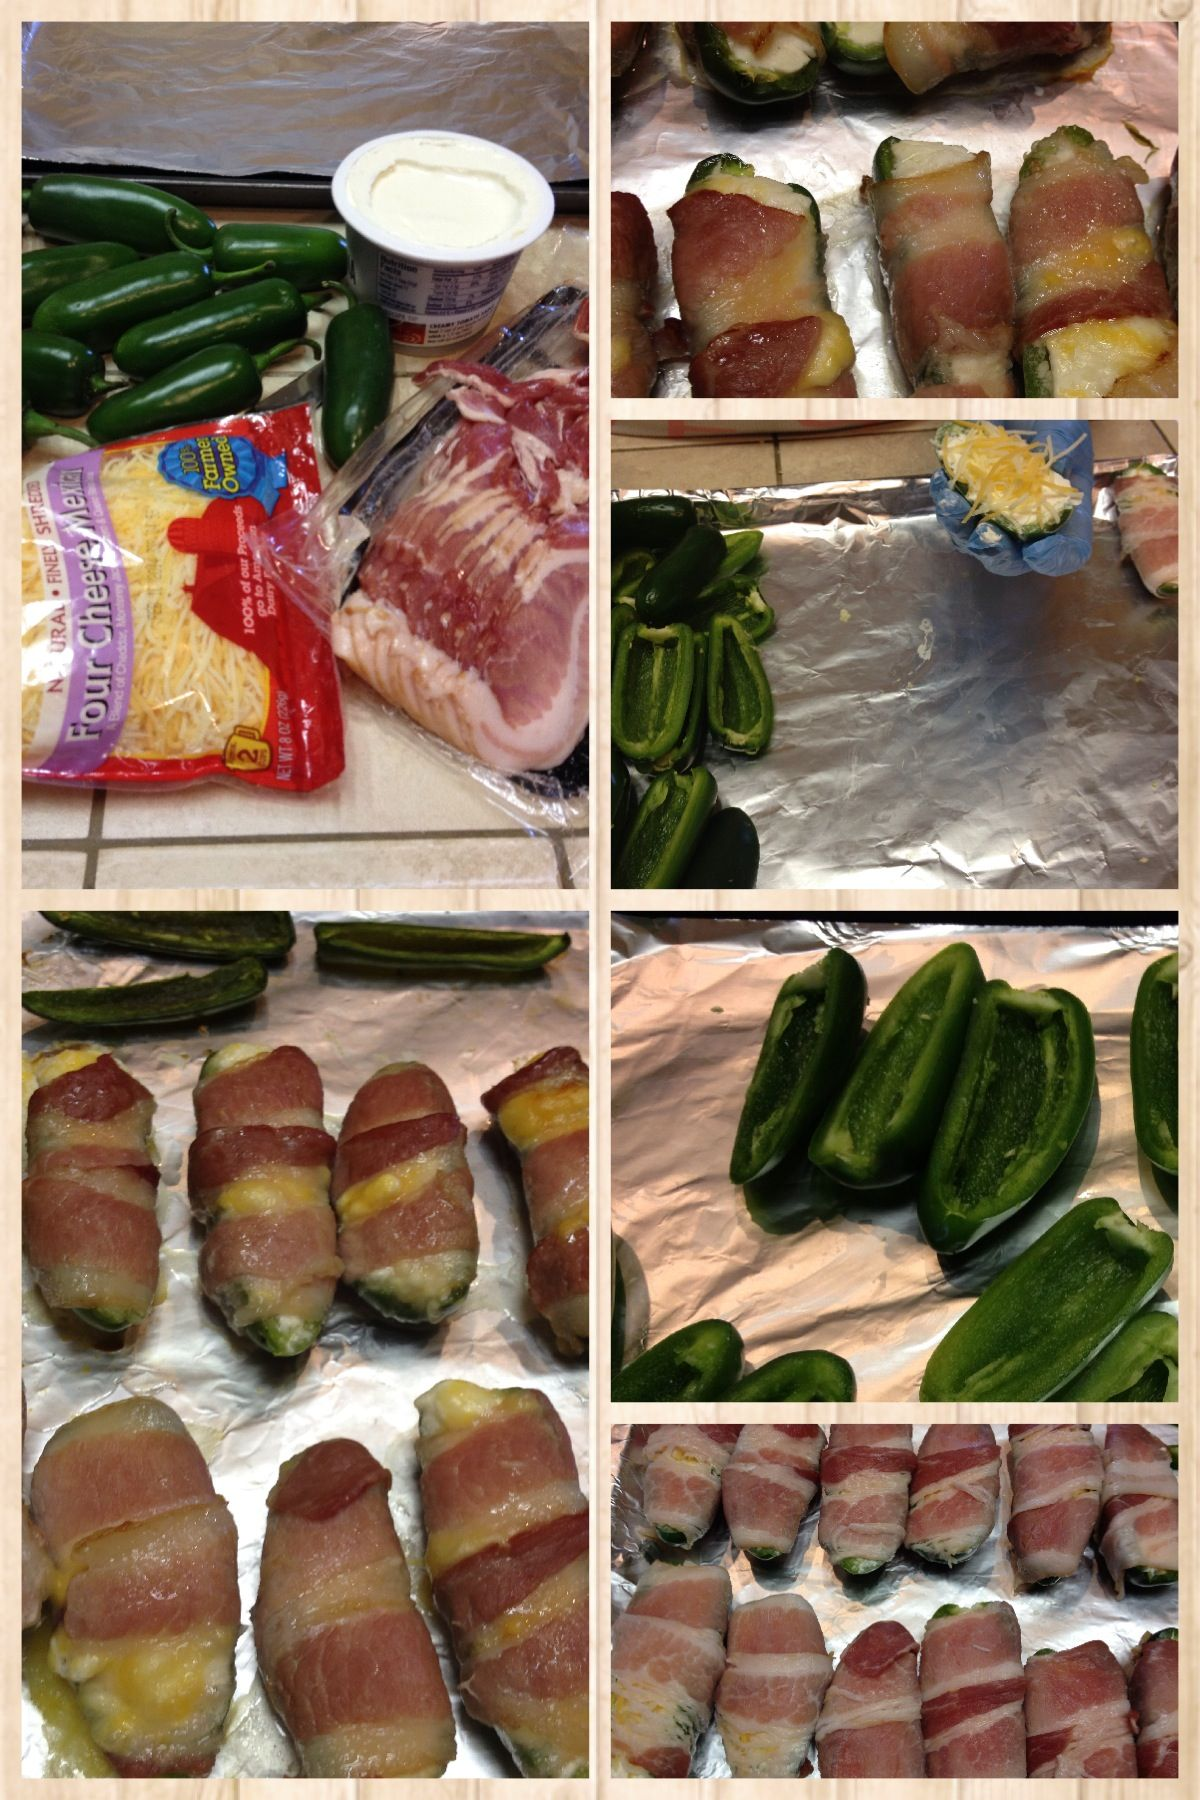 Stuffed Jalapeños wrapped in Bacon